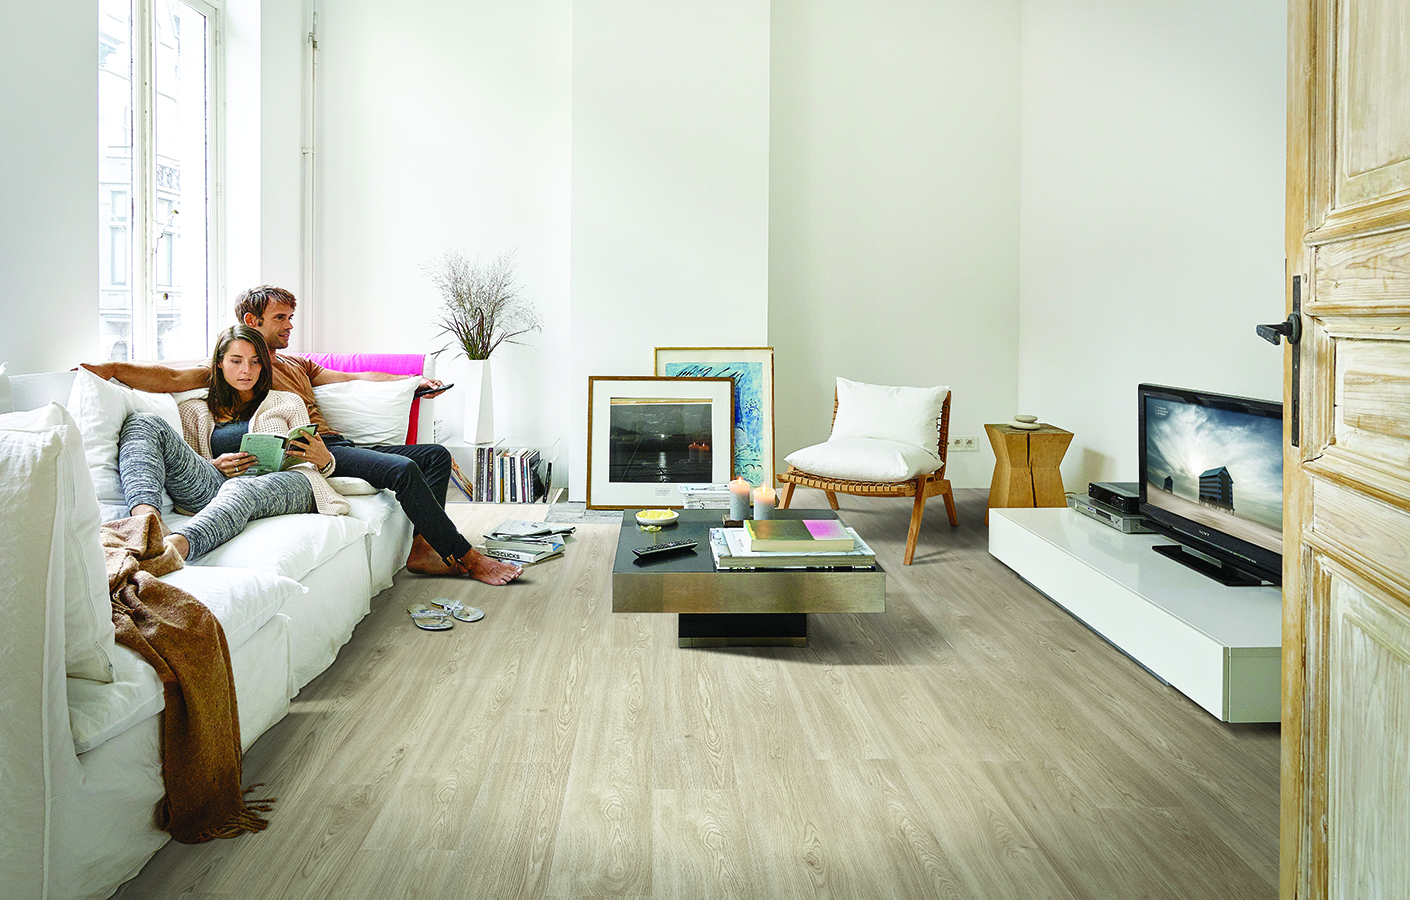 How to pick the perfect living room flooring? | BerryAlloc ...